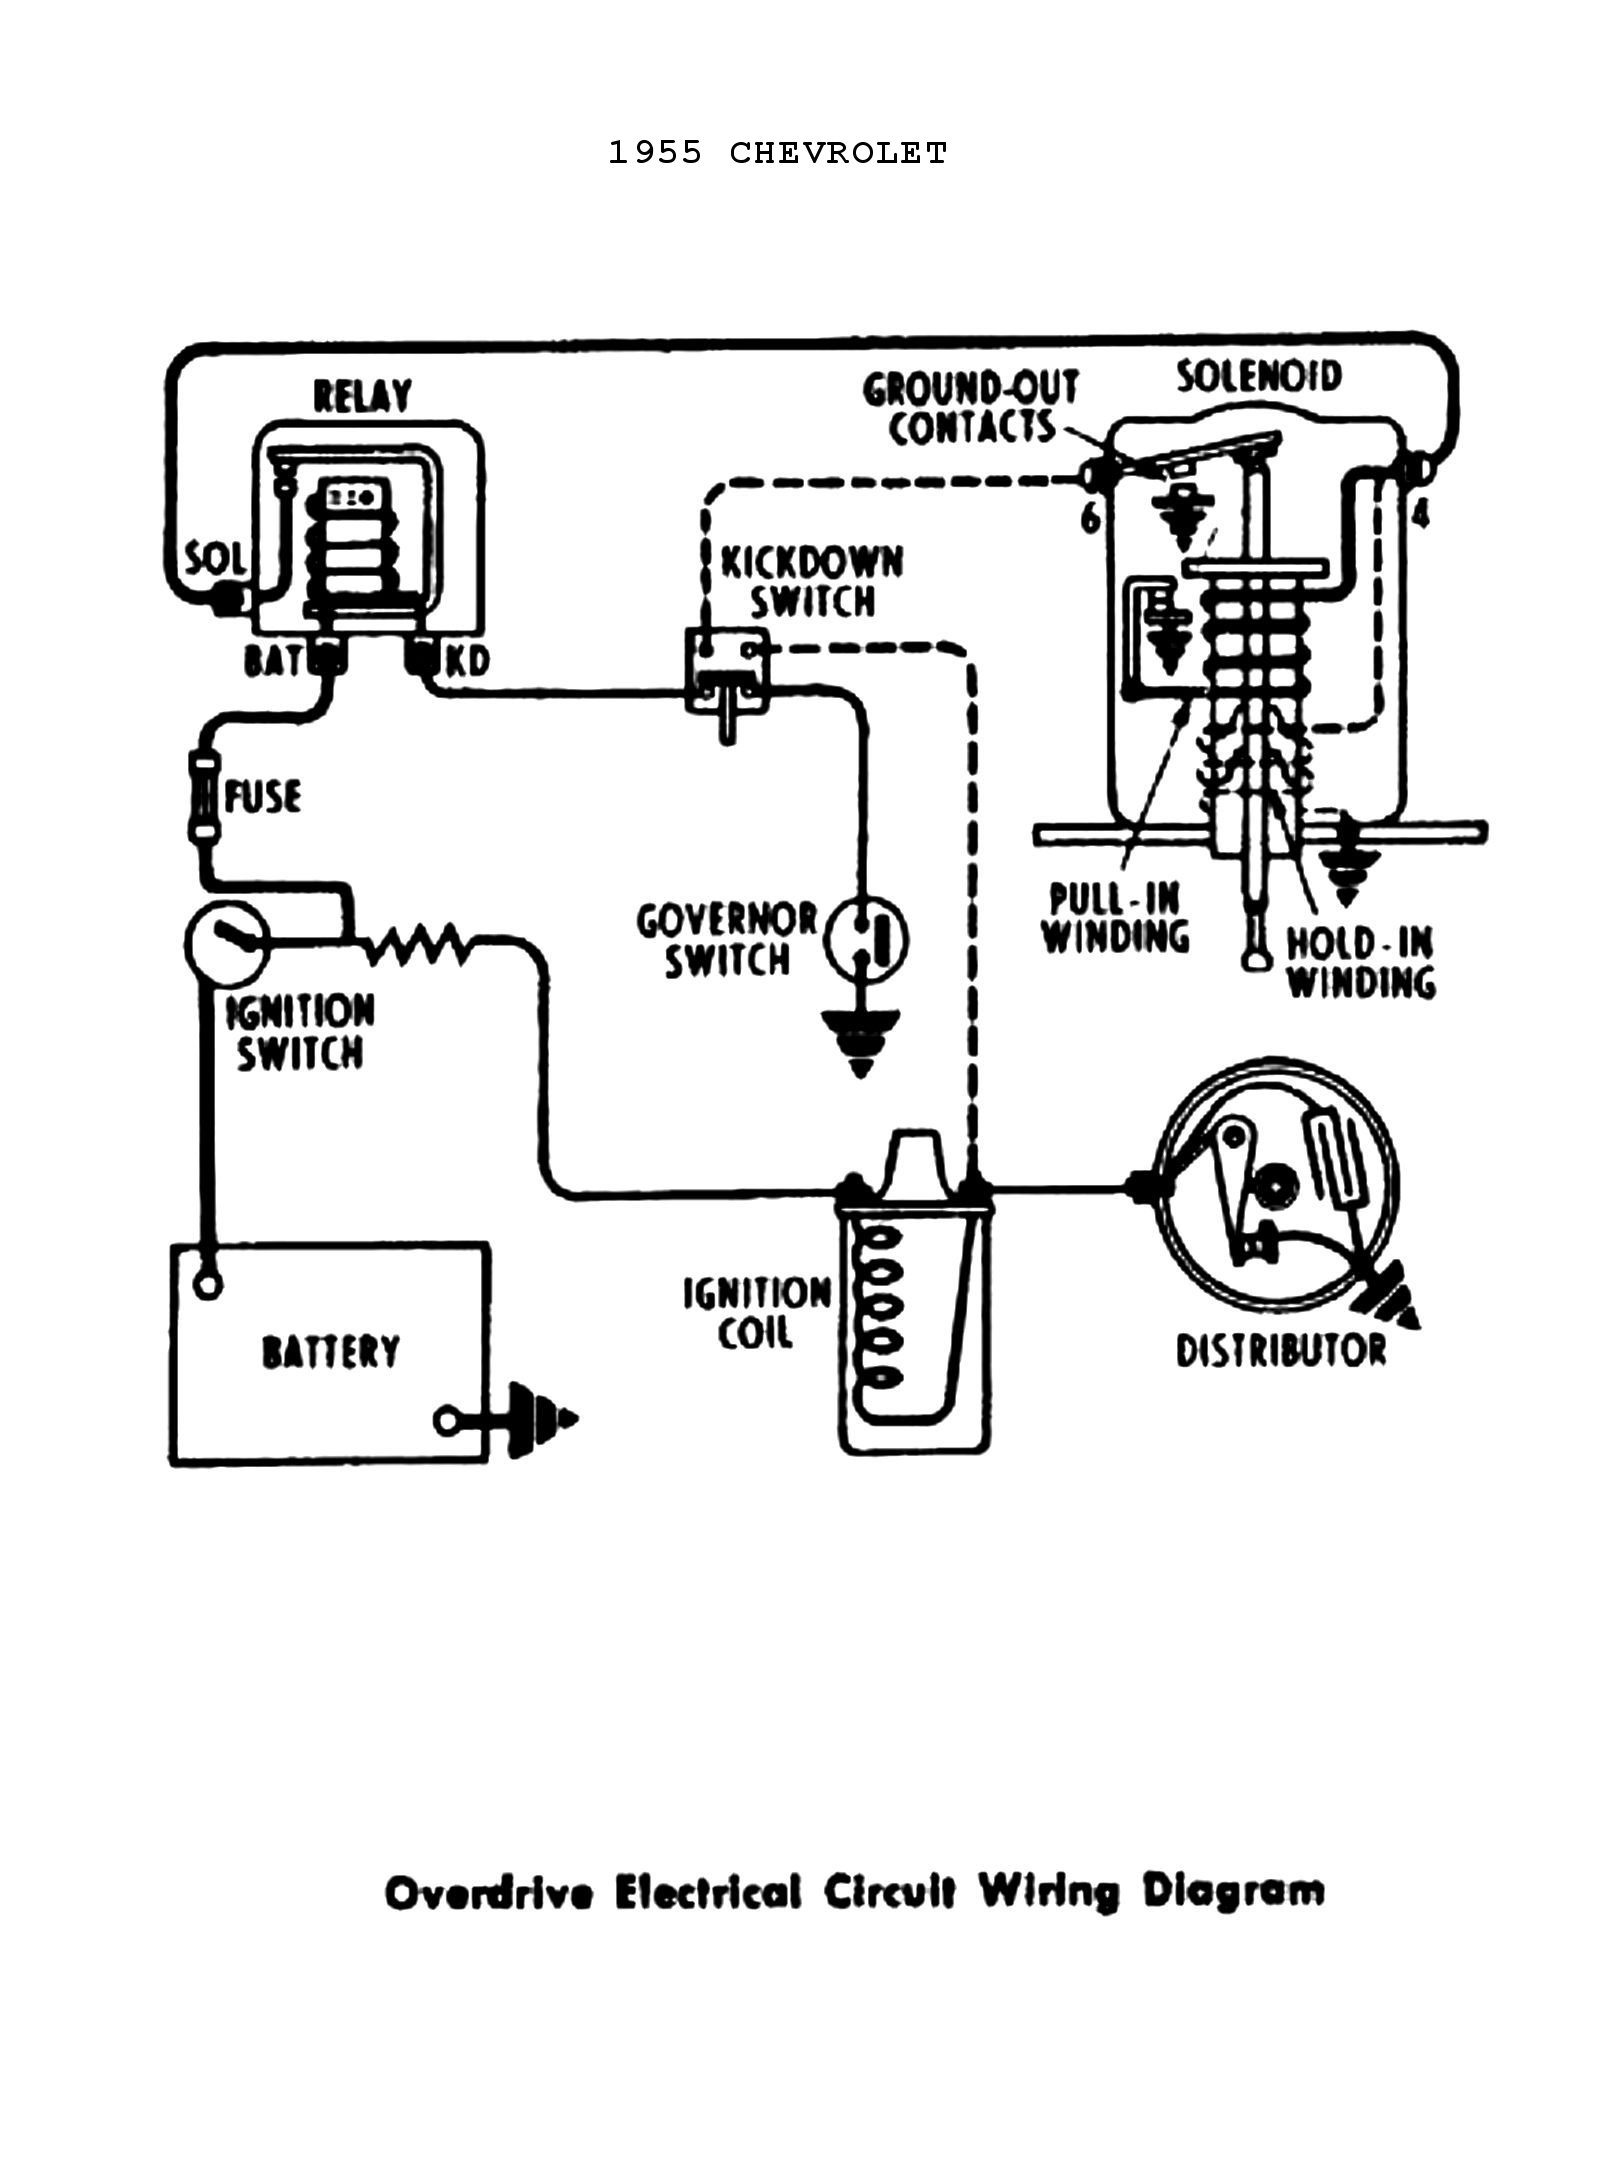 Hei Distributor Alternator Ford 460 A 225789 further Honda Cb400 Hawk Ii Electrical Wiring Diagram in addition P 0996b43f8037eaeb moreover 413084 Trailer Brakes Won T Turn Off further 1970 Corvette Horn Relay Wiring Diagrams. on ford starter wiring connection